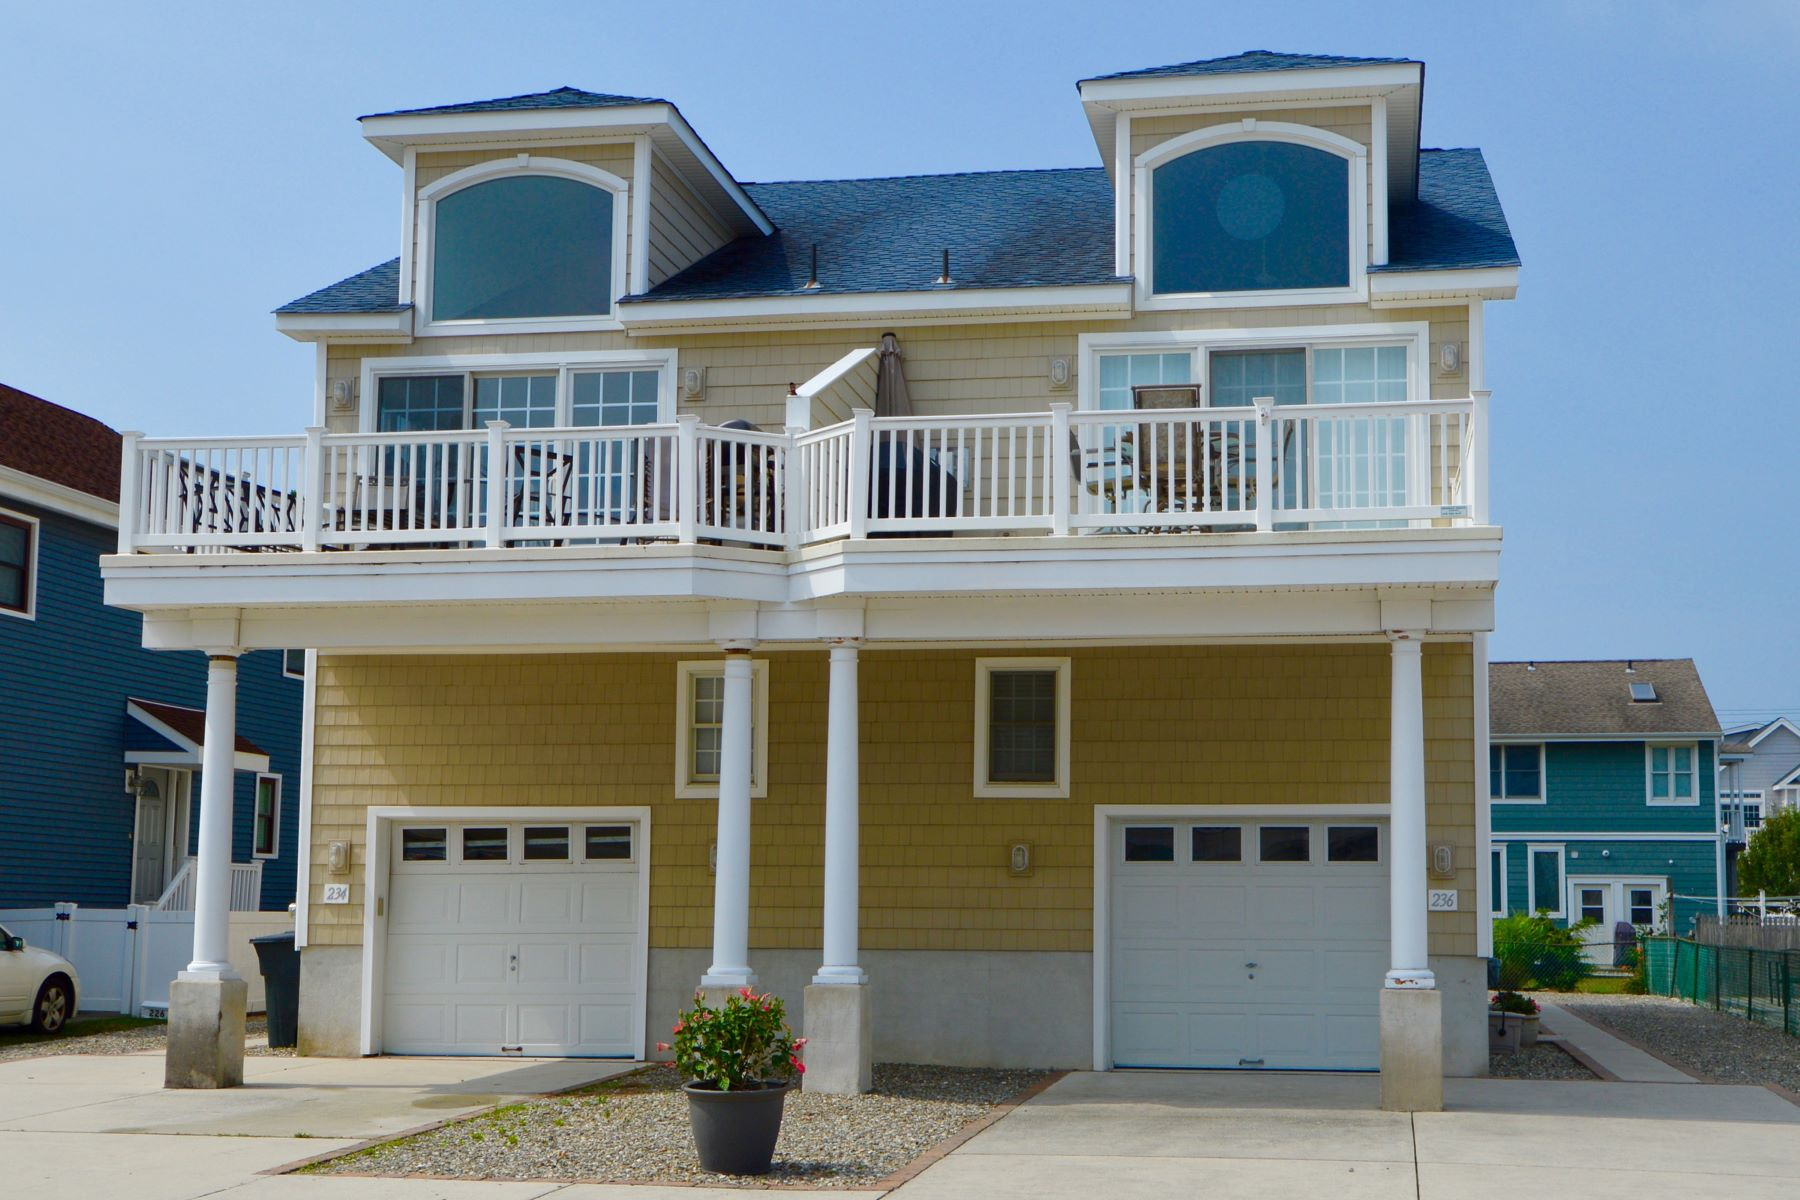 Single Family Home for Sale at Ideal Center of Town Location 236 24th Street Avalon, New Jersey 08202 United States